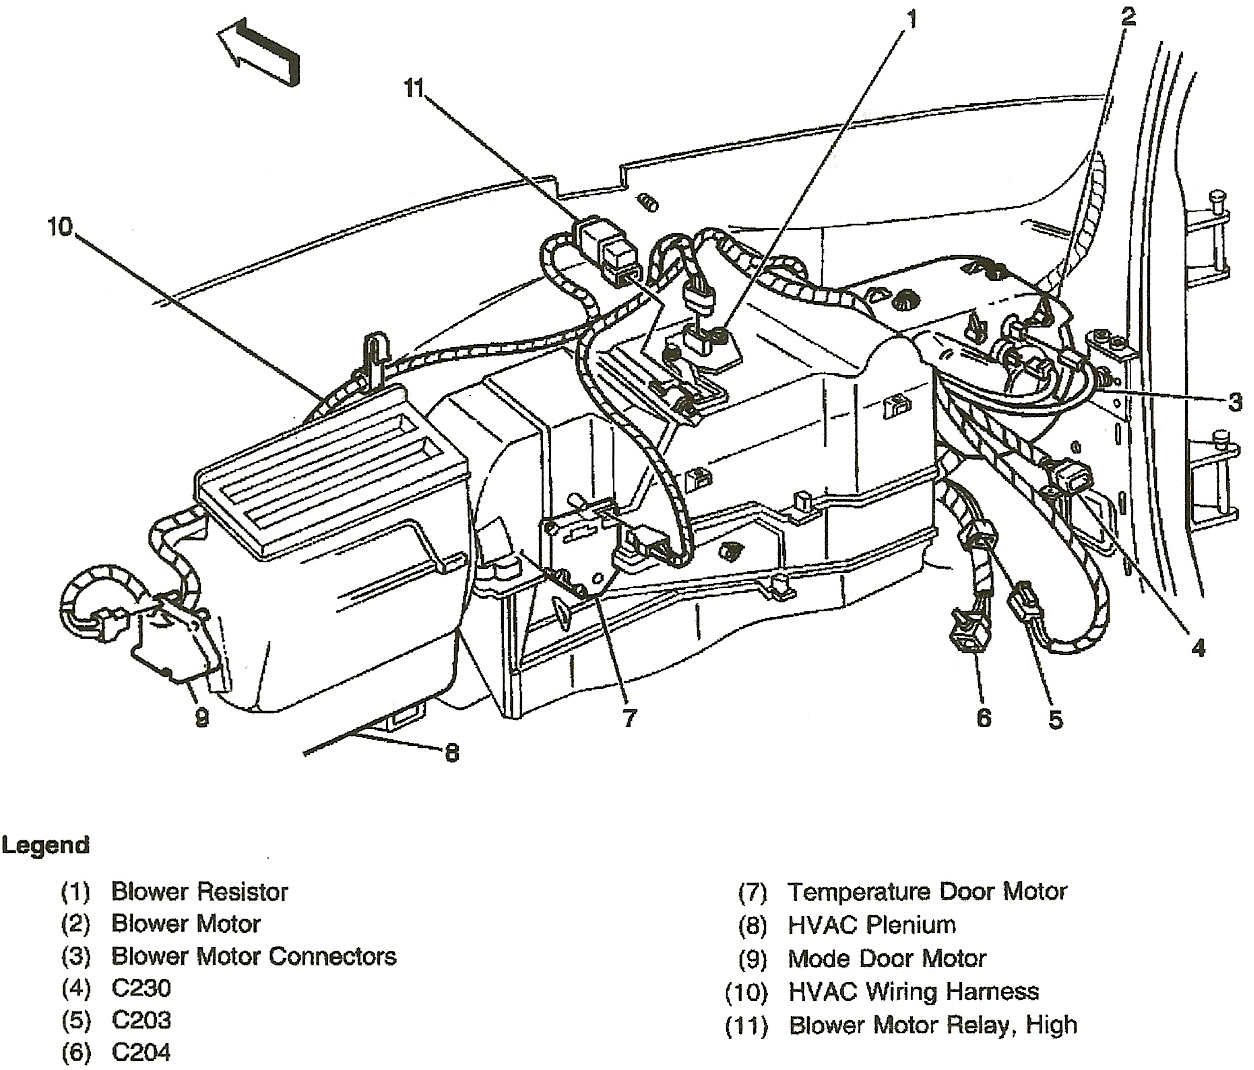 hight resolution of 1999 gmc suburban engine diagram wiring diagrams img rh 30 andreas bolz de 2004 gmc sierra radio wiring diagram 2004 gmc sierra 2500hd trailer wiring